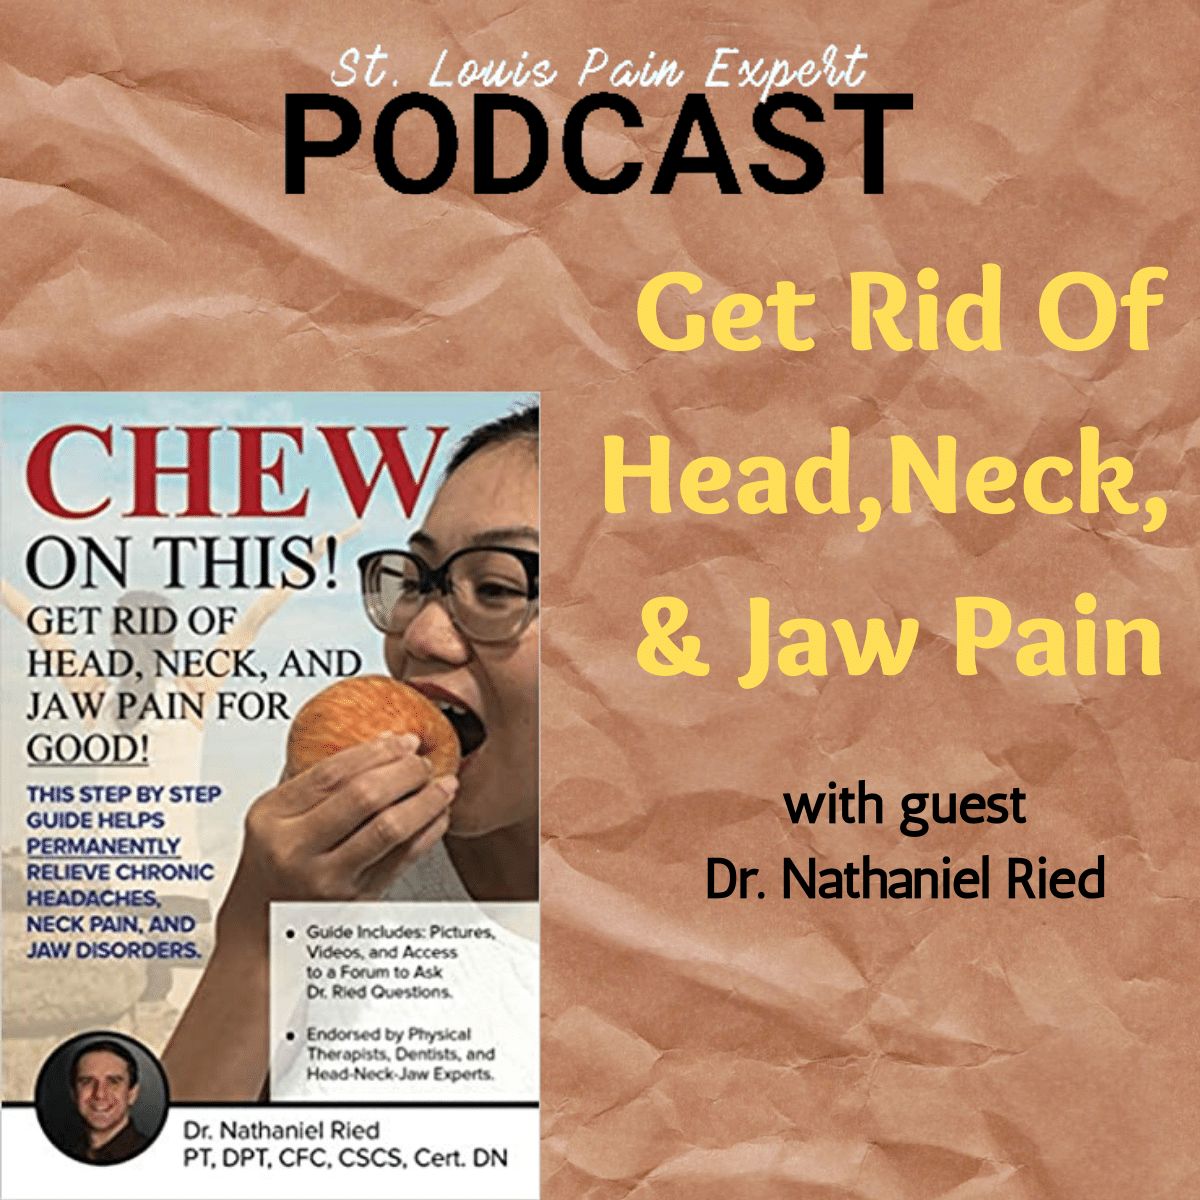 Relieve TMJ Pain - Get Rid Of Head, Neck, and Jaw Pain